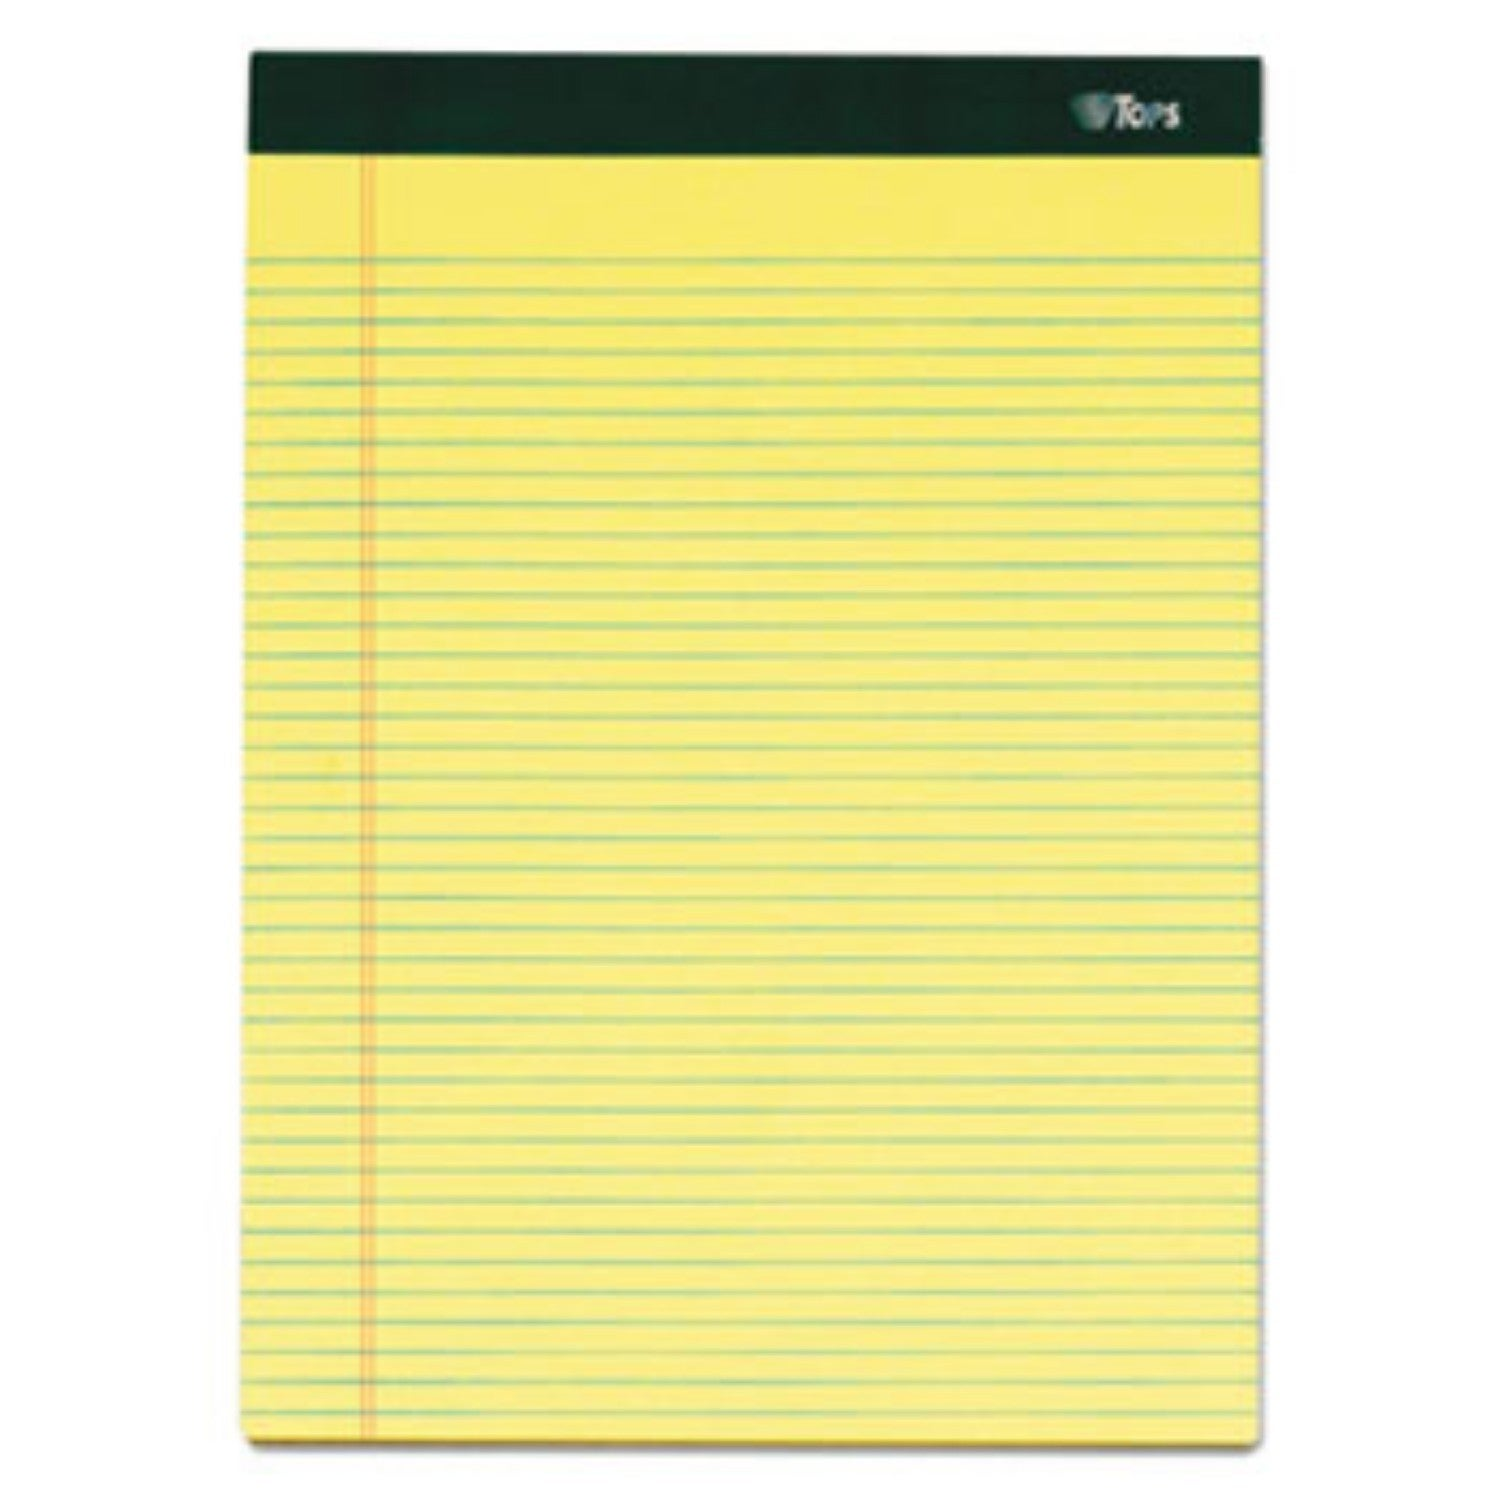 Tops Double Docket Ruled Pads 8 1/2 x 11 3/4 Canary 100 S...